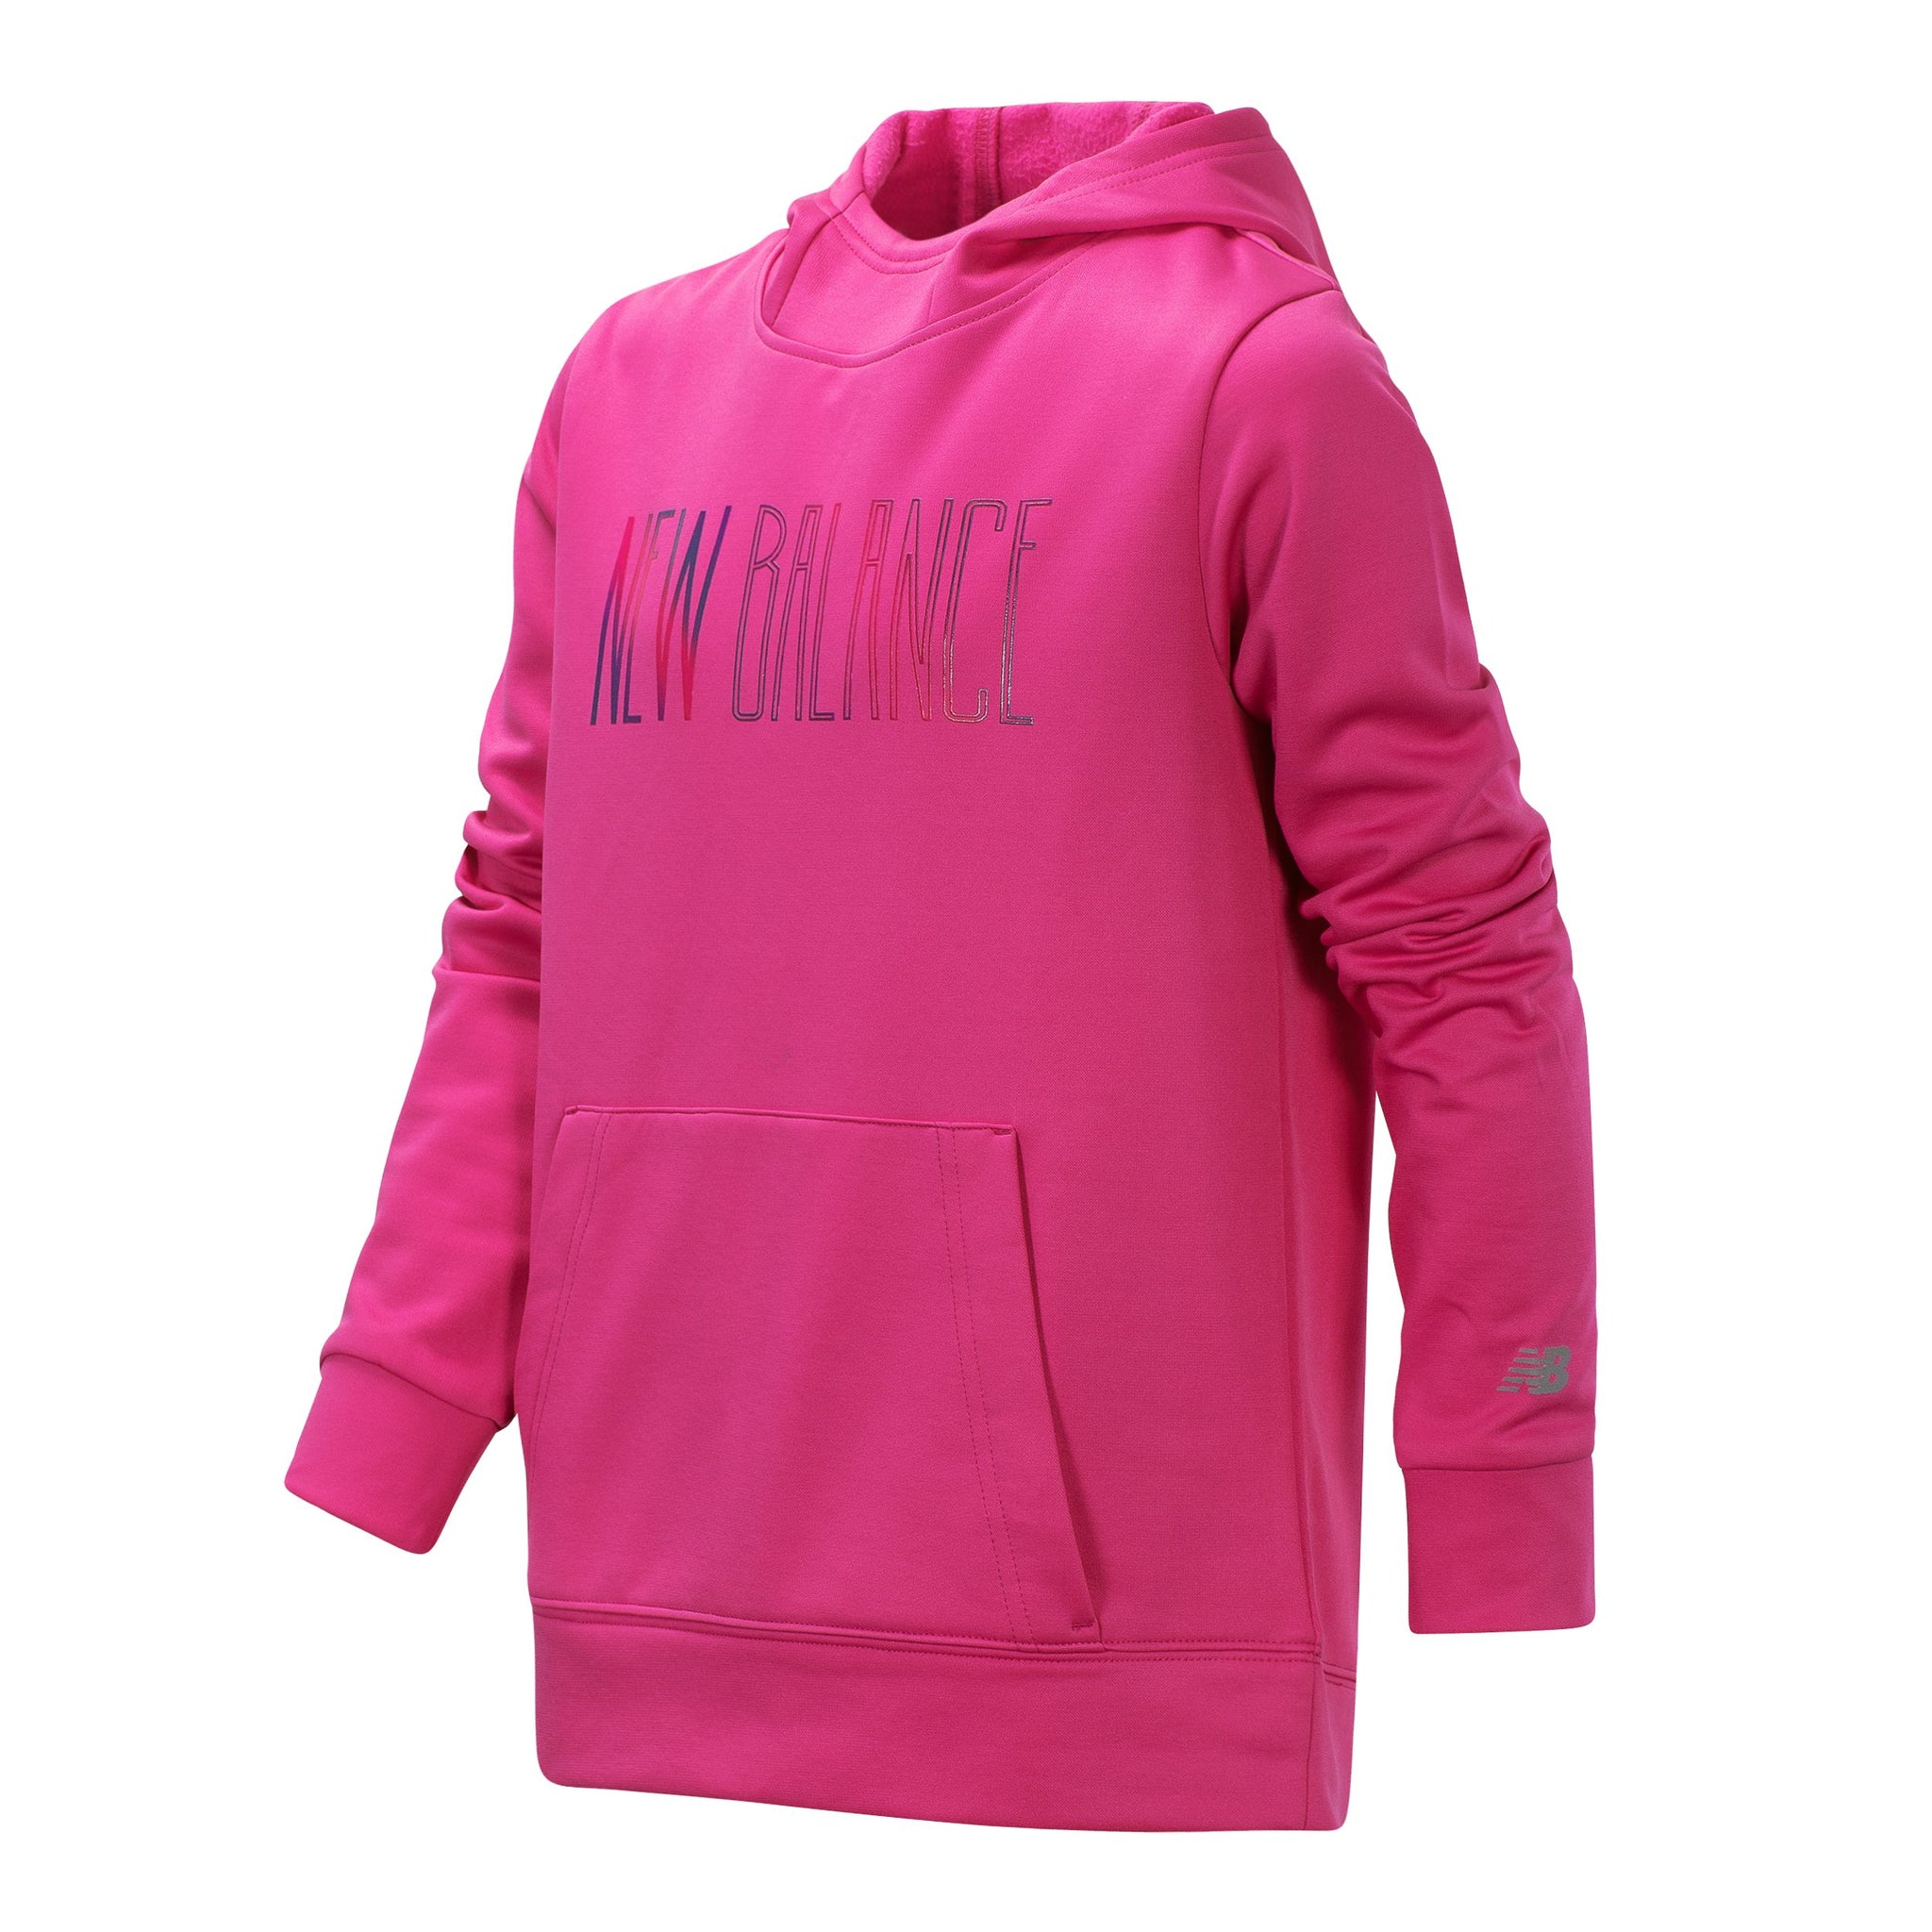 Girls' New Balance Graphic Carnival Pink Graphic Hoodie